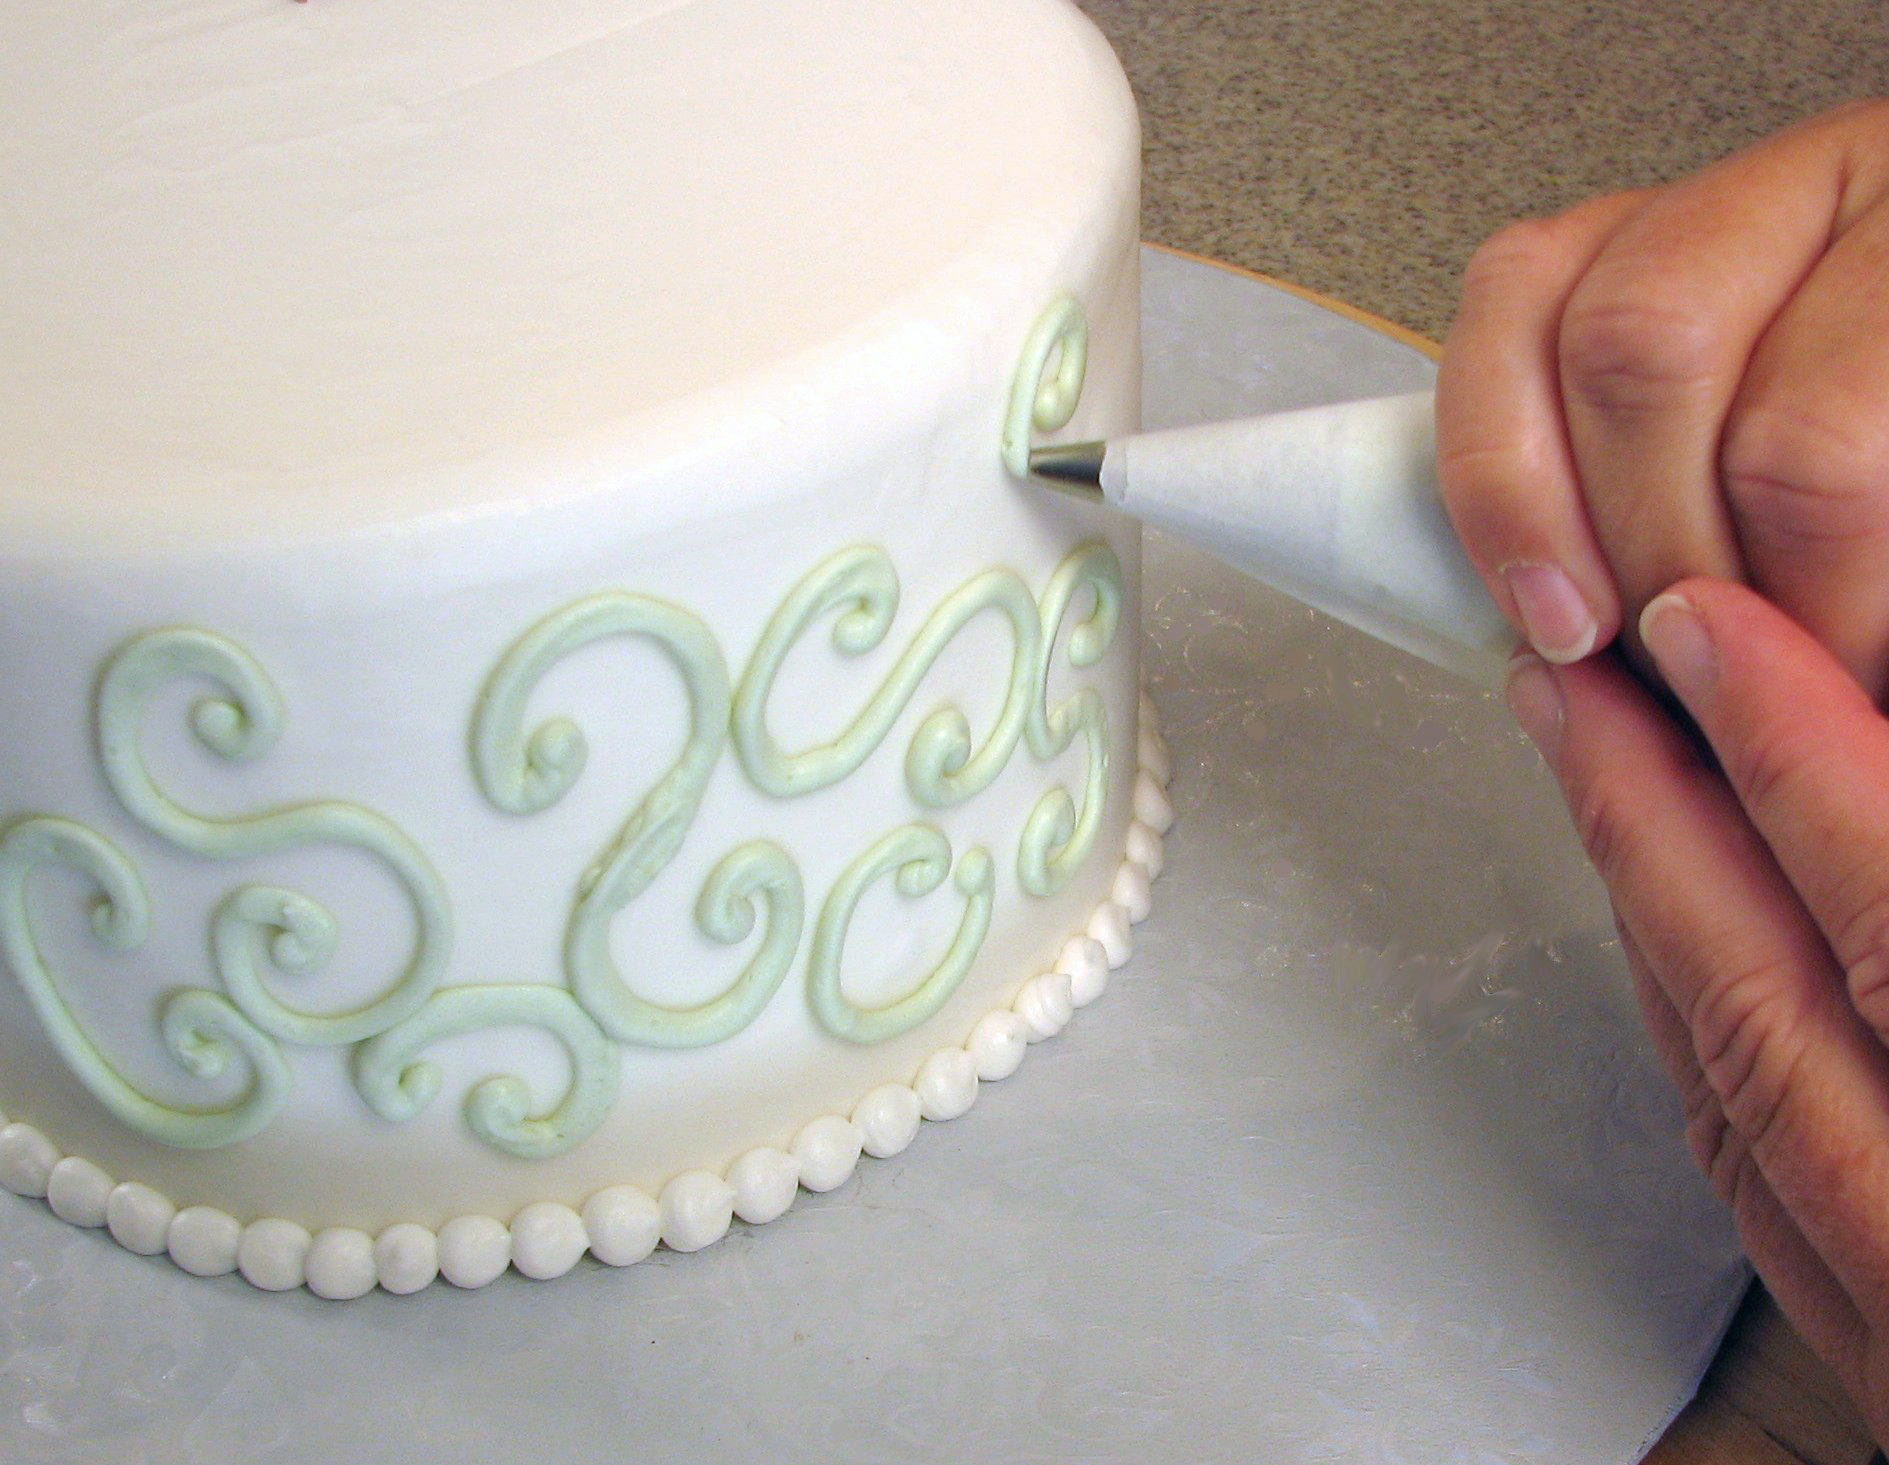 Cake Decorating Piping Design : Description Piping buttercream onto cake.JPG